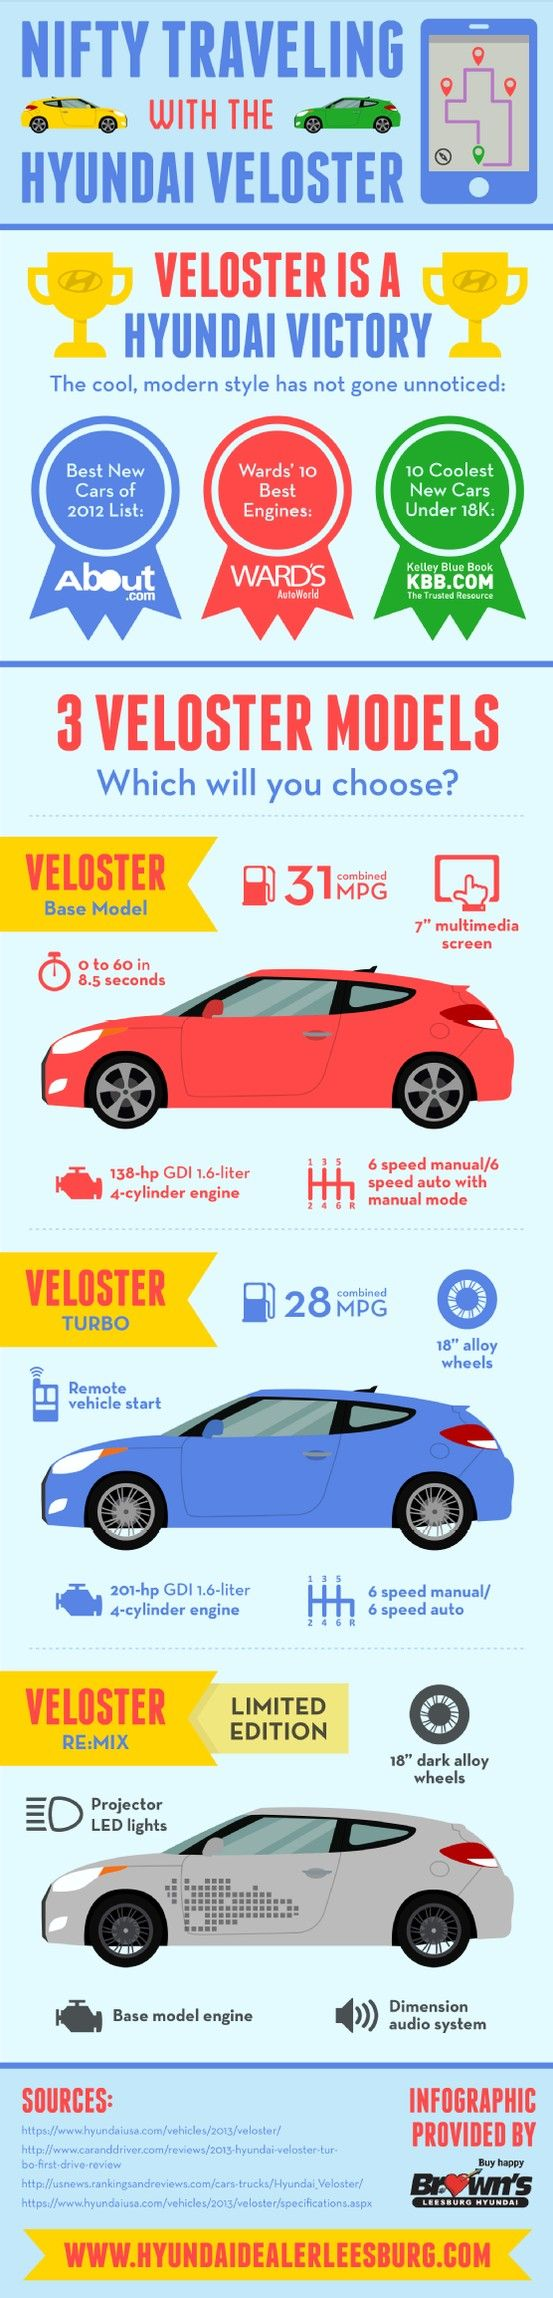 Did you know that the Hyundai Veloster has a 138-hp GDI 1.6-liter 4-cylinder engine? This is just one of the impressive features found in this amazing vehicle! Learn about other features on this infographic from a Hyundai dealership in Leesburg.